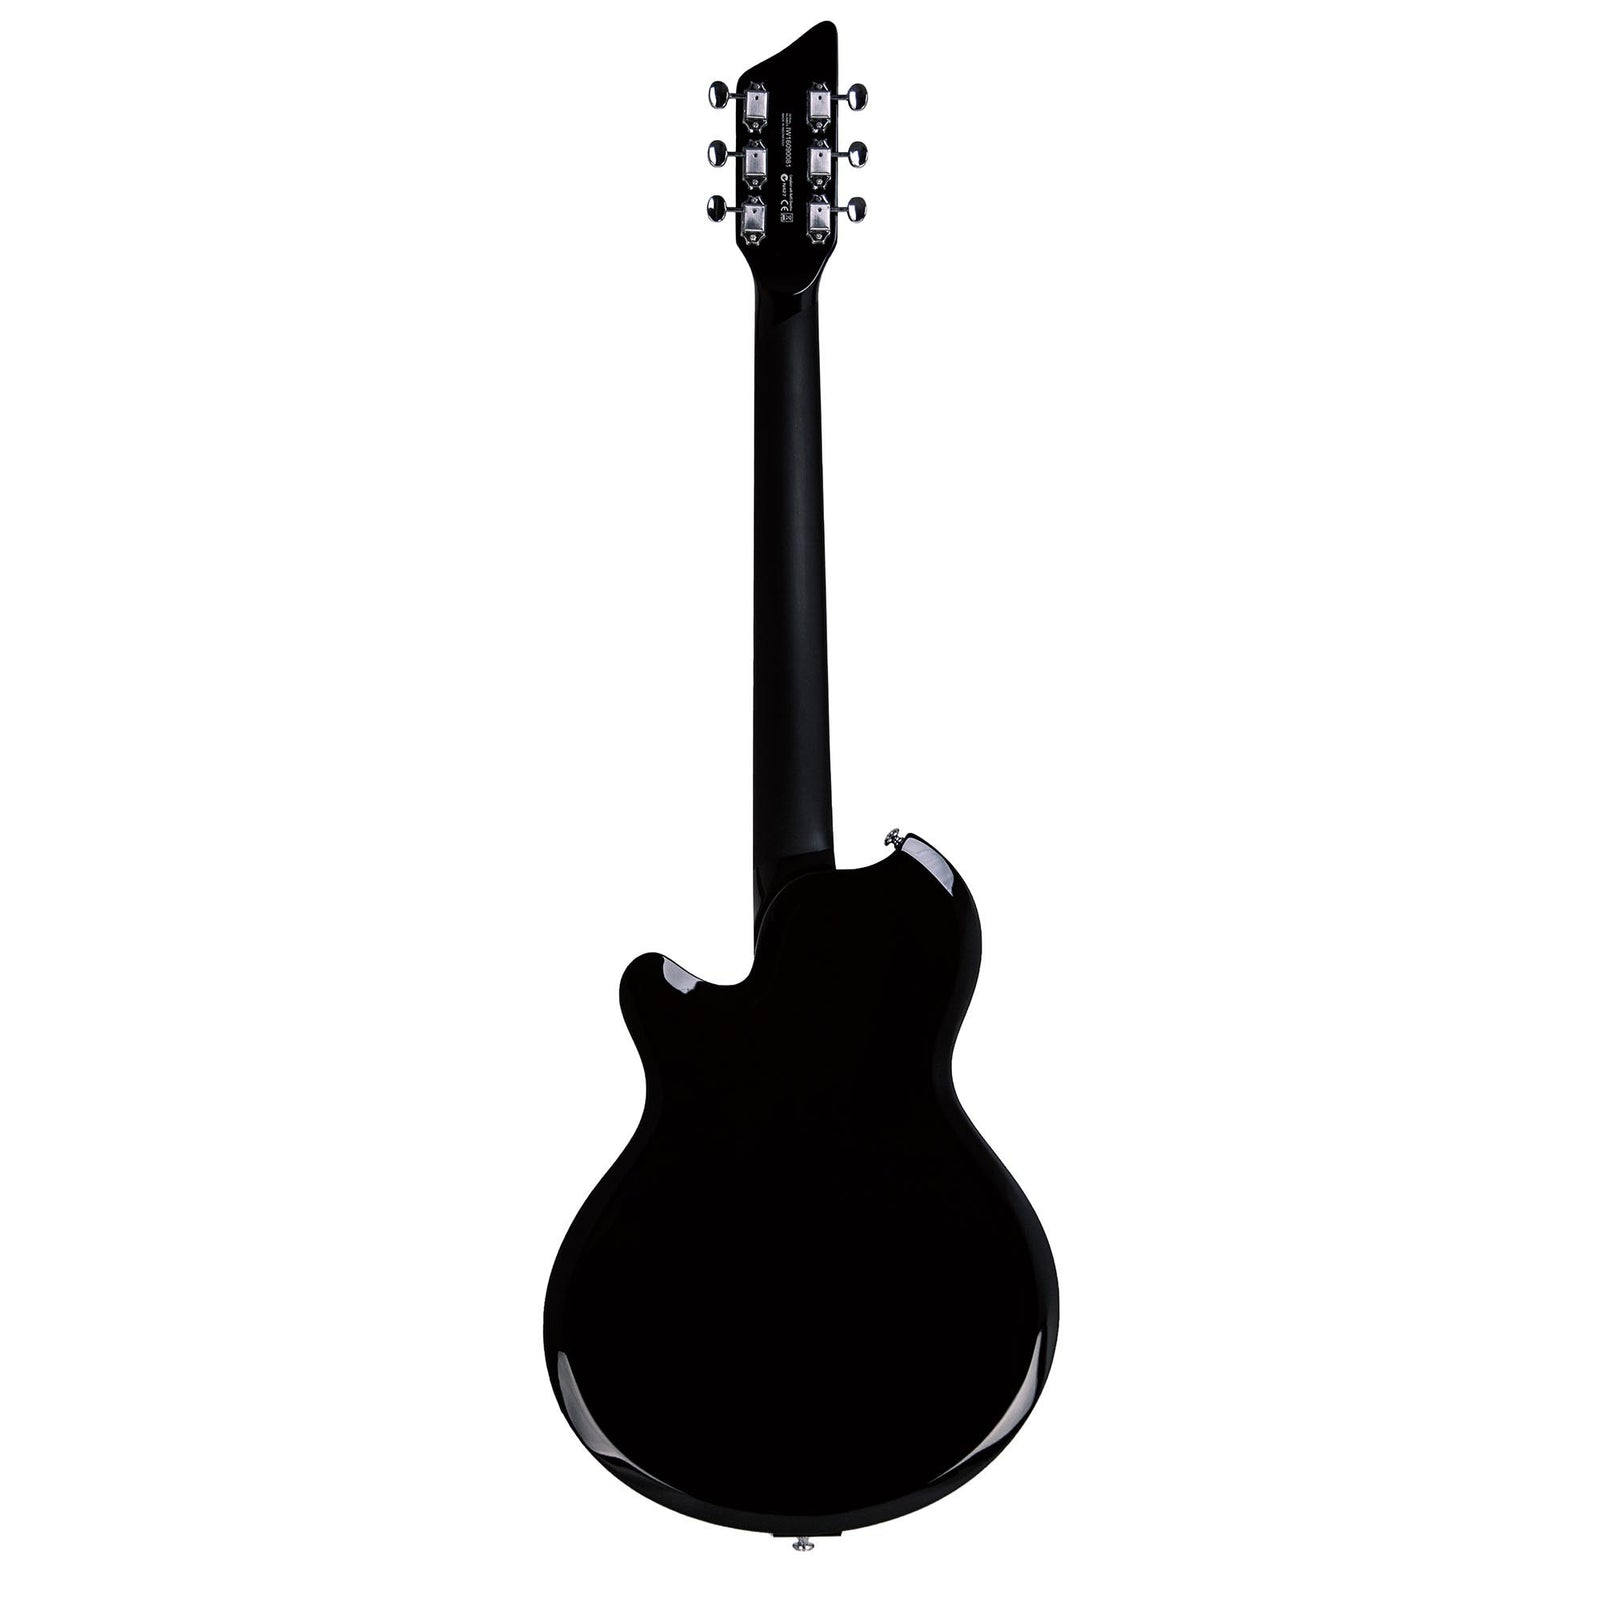 Supro Island Series Jamesport Guitar - Single Pickup - Jet Black - Free Gig-Bag